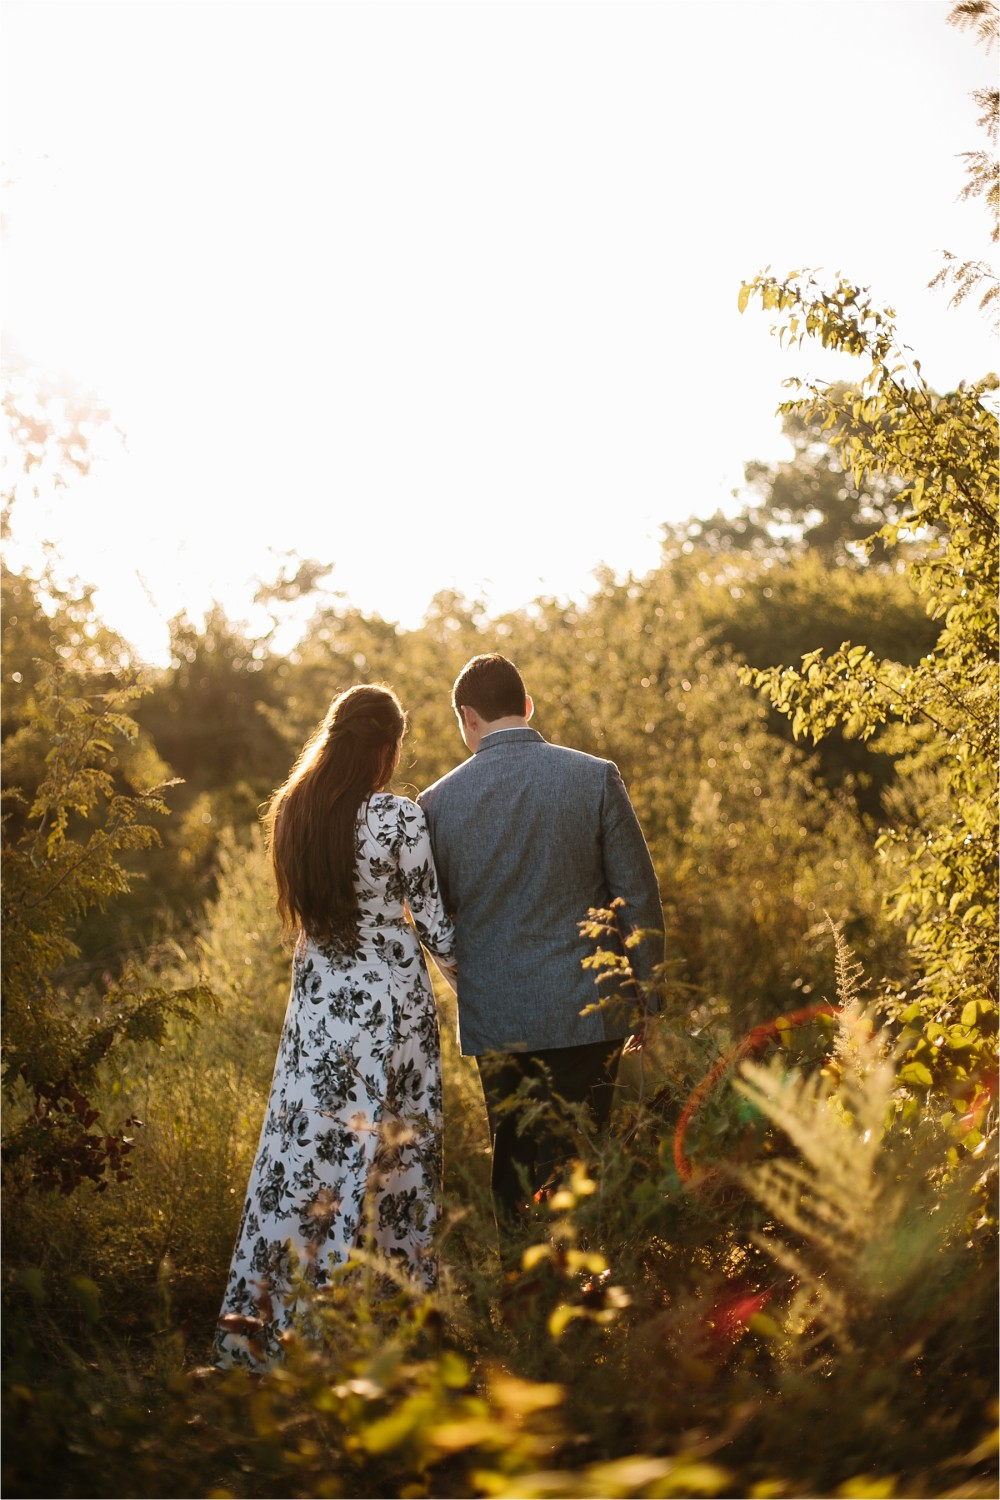 an-intimate-sunrise-session-by-north-texas-wedding-photographer-rachel-meagan-photography-_-40